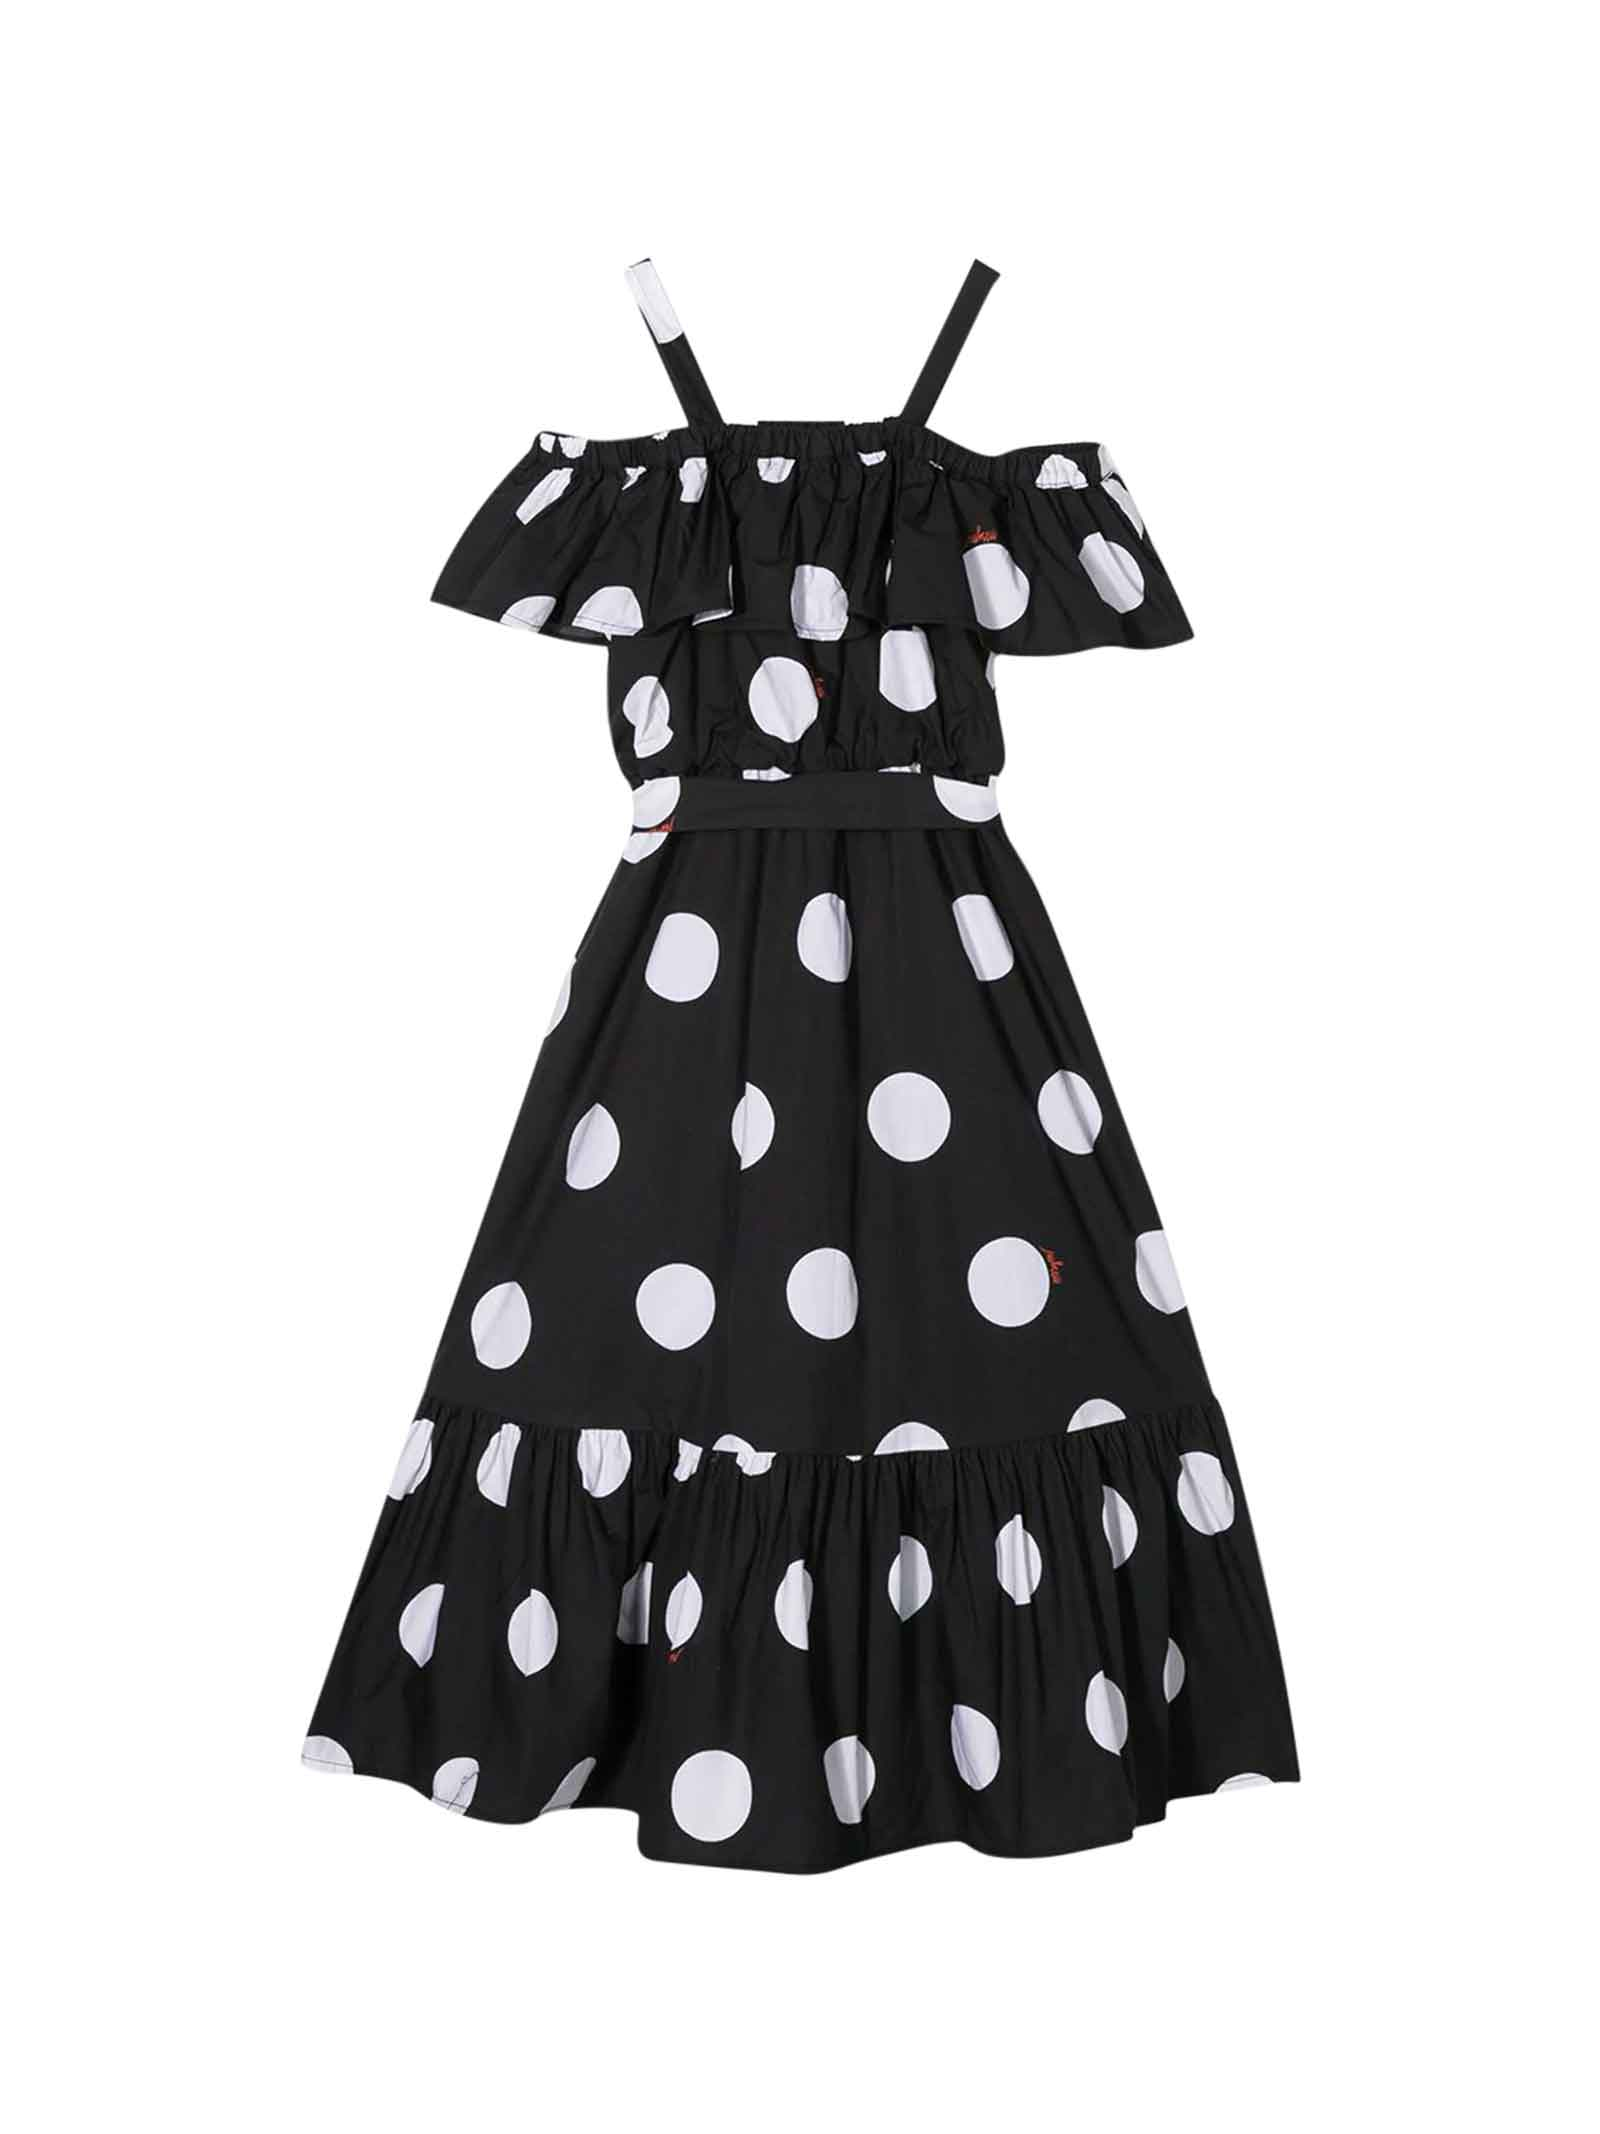 Buy MSGM Black Dress With White Polka Dots online, shop MSGM with free shipping